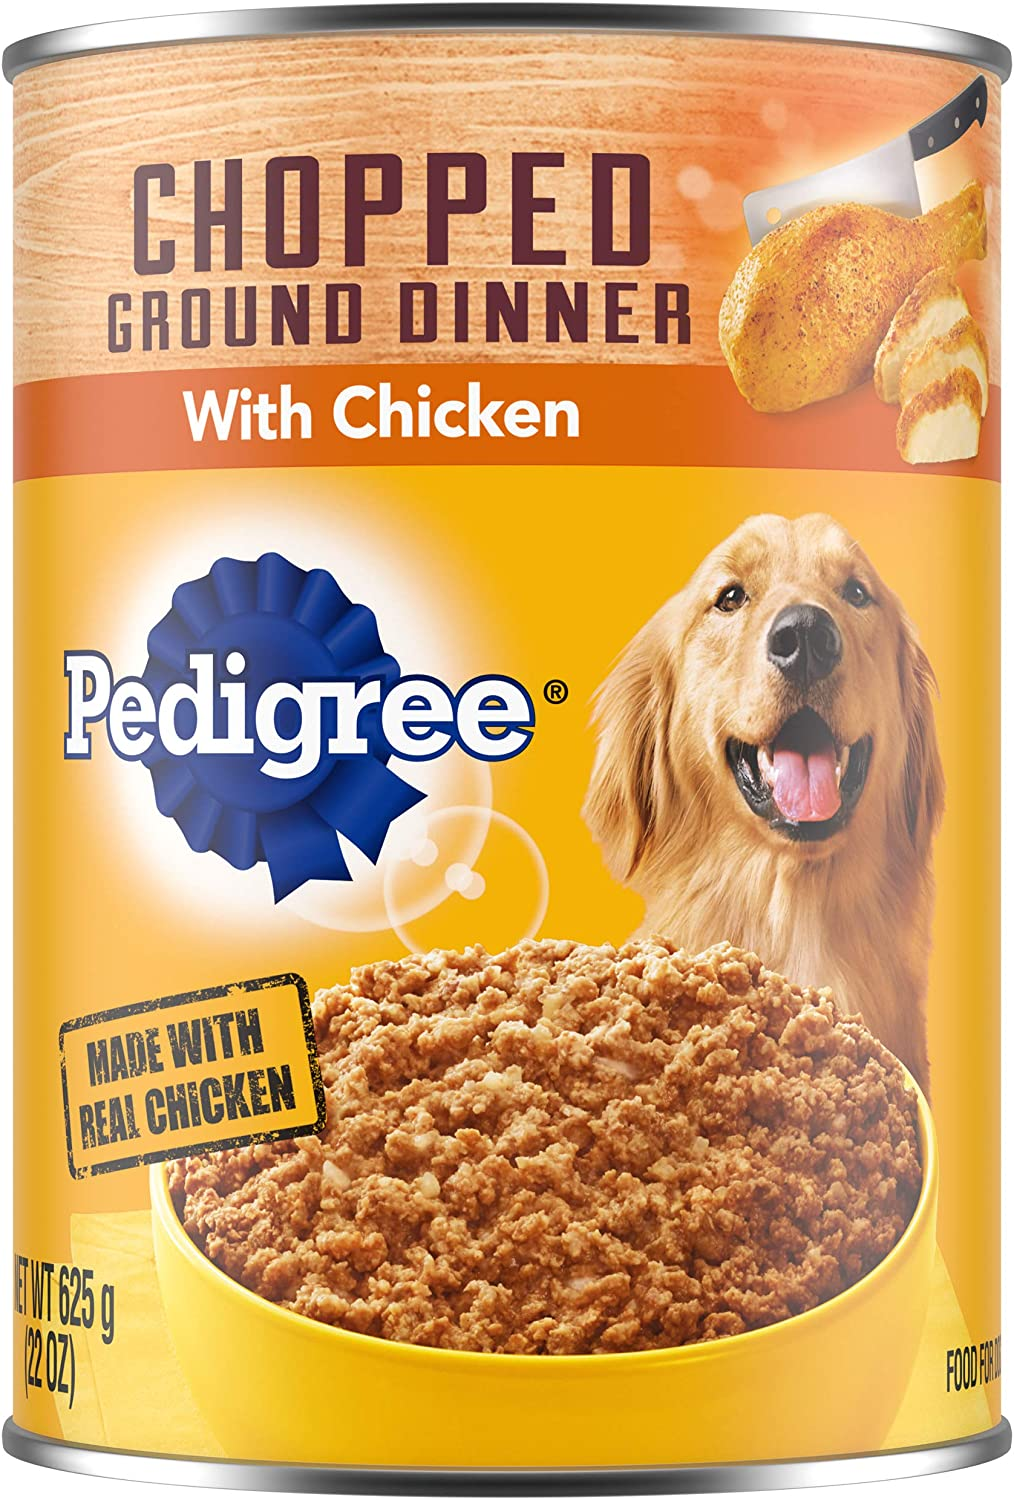 PEDIGREE Adult Canned Wet Dog Food Chopped Ground Dinner with Chicken, (12) 22 oz. Cans